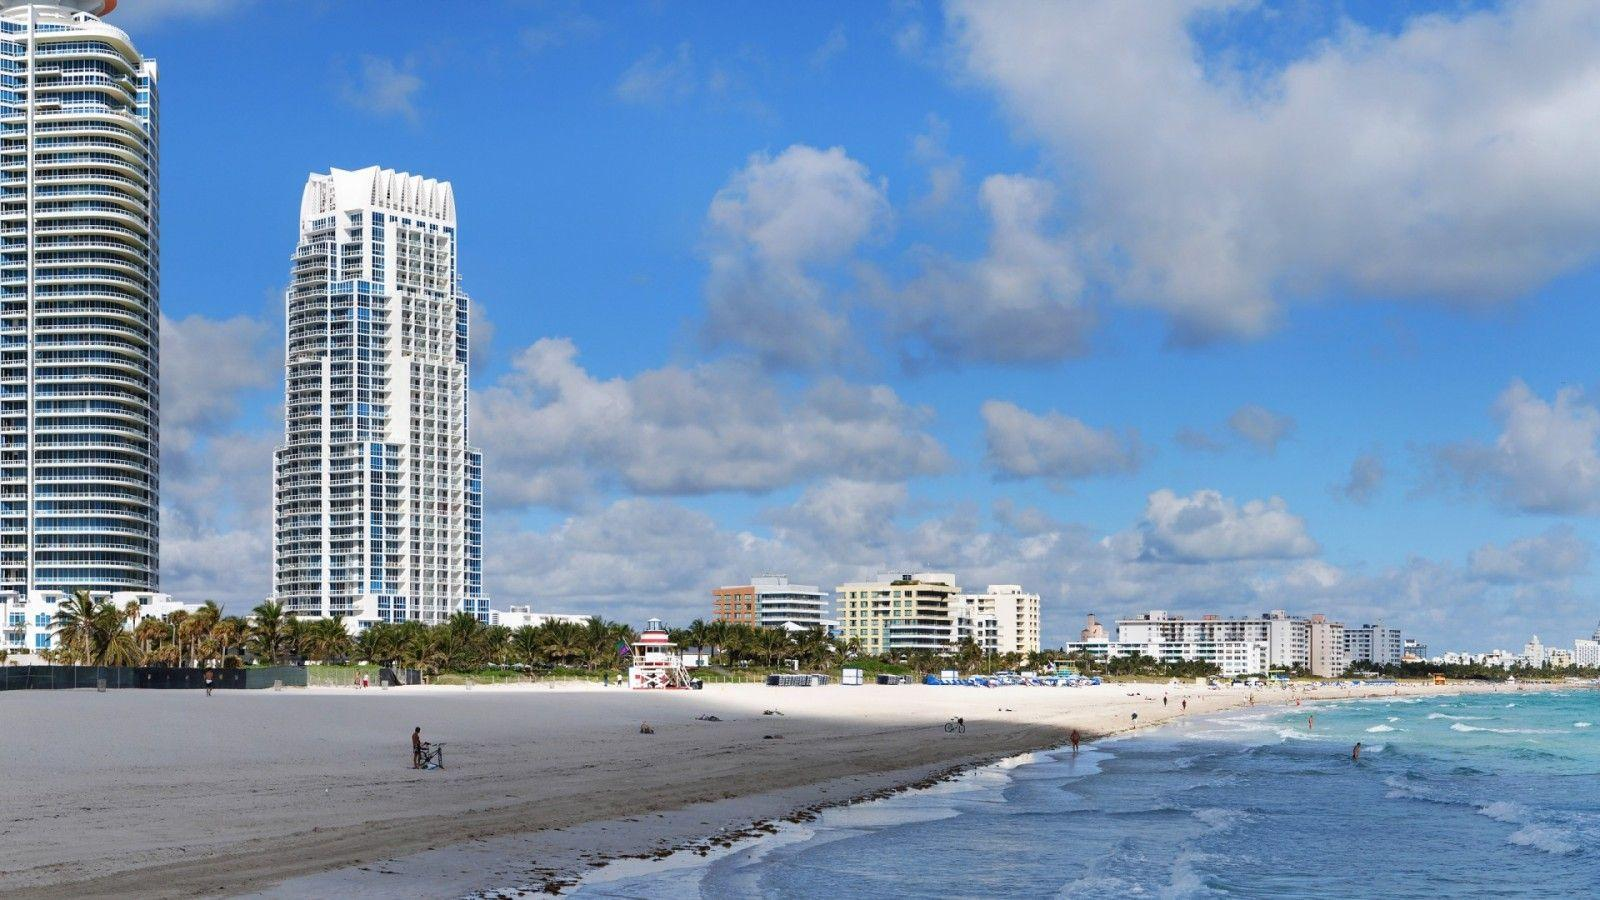 Miami South Beach Florida Pictures HD Wallpapers of Beach